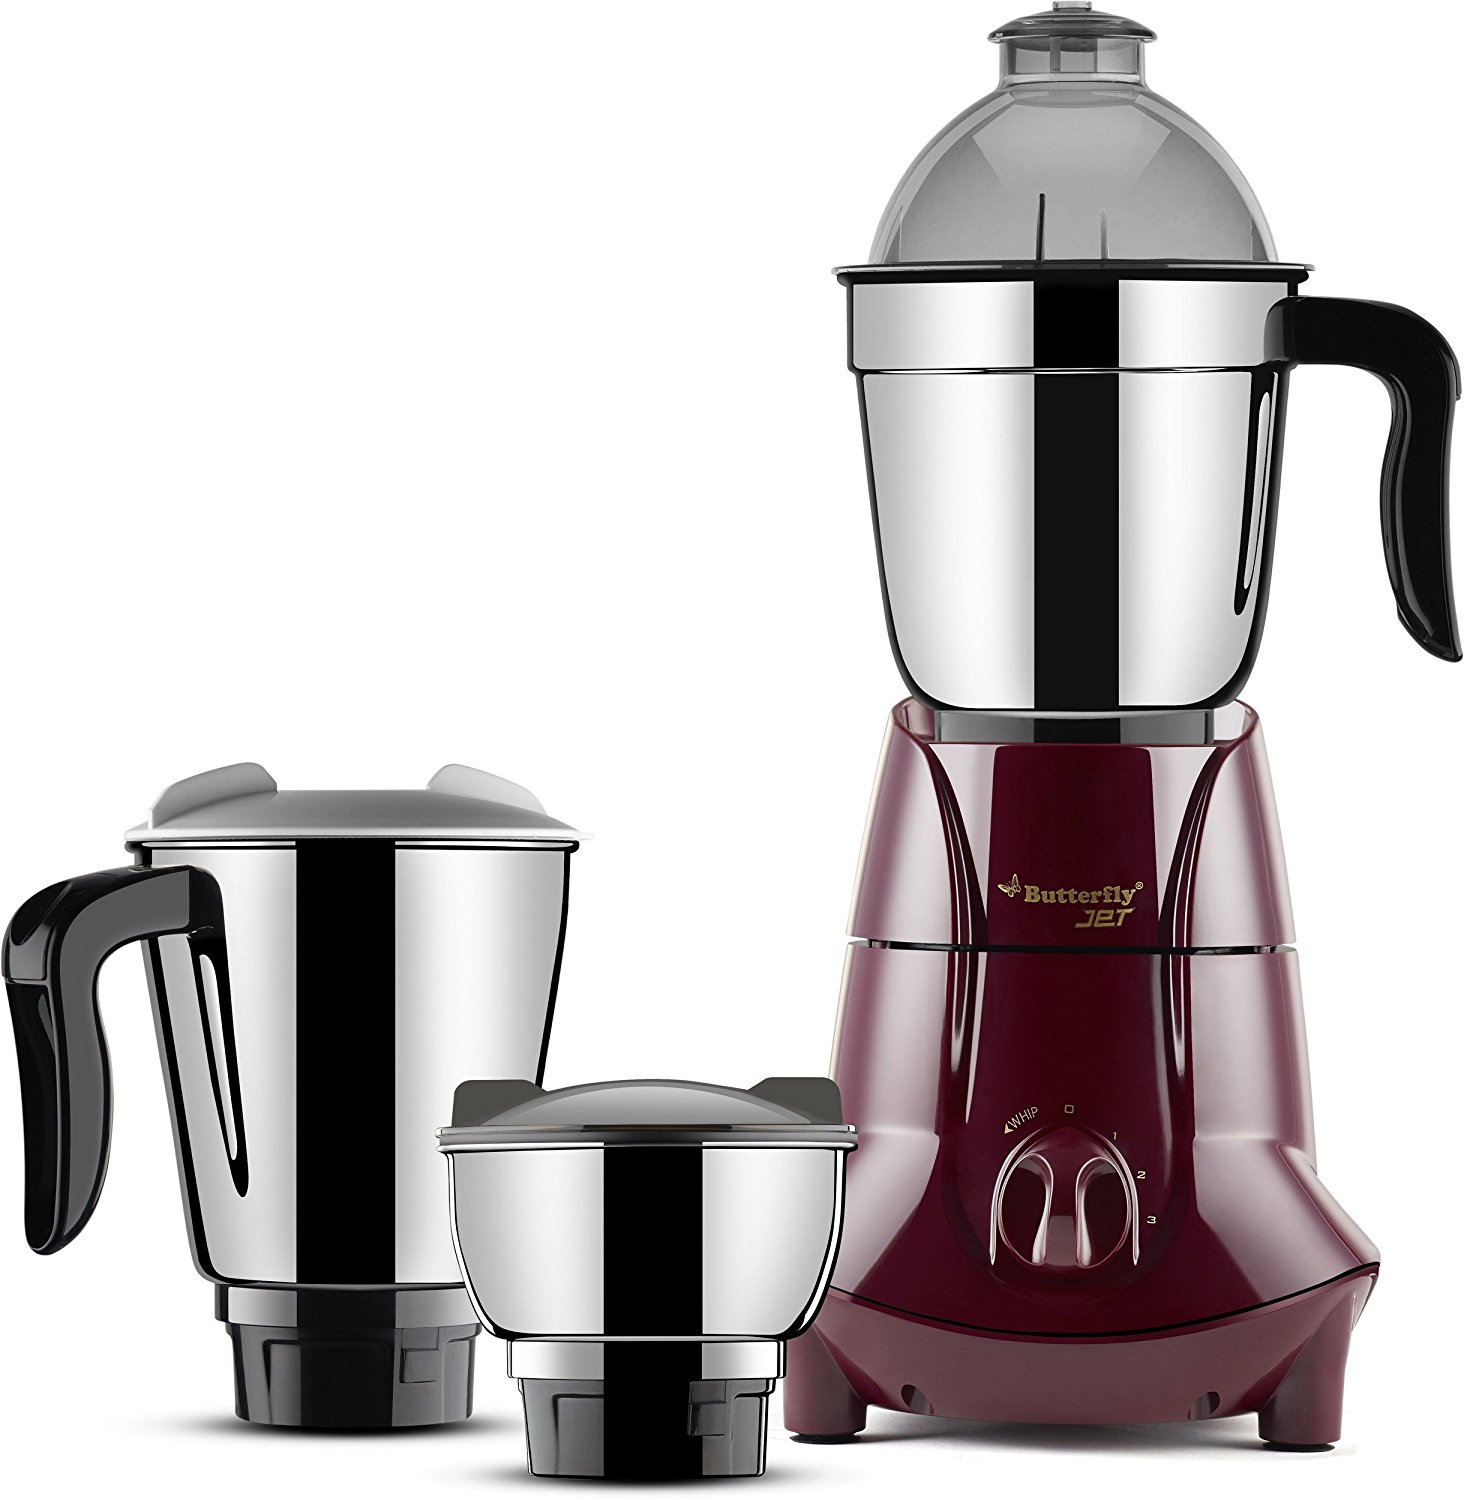 Butterfly Jet 750-Watt Mixer Grinder with 3 Jars